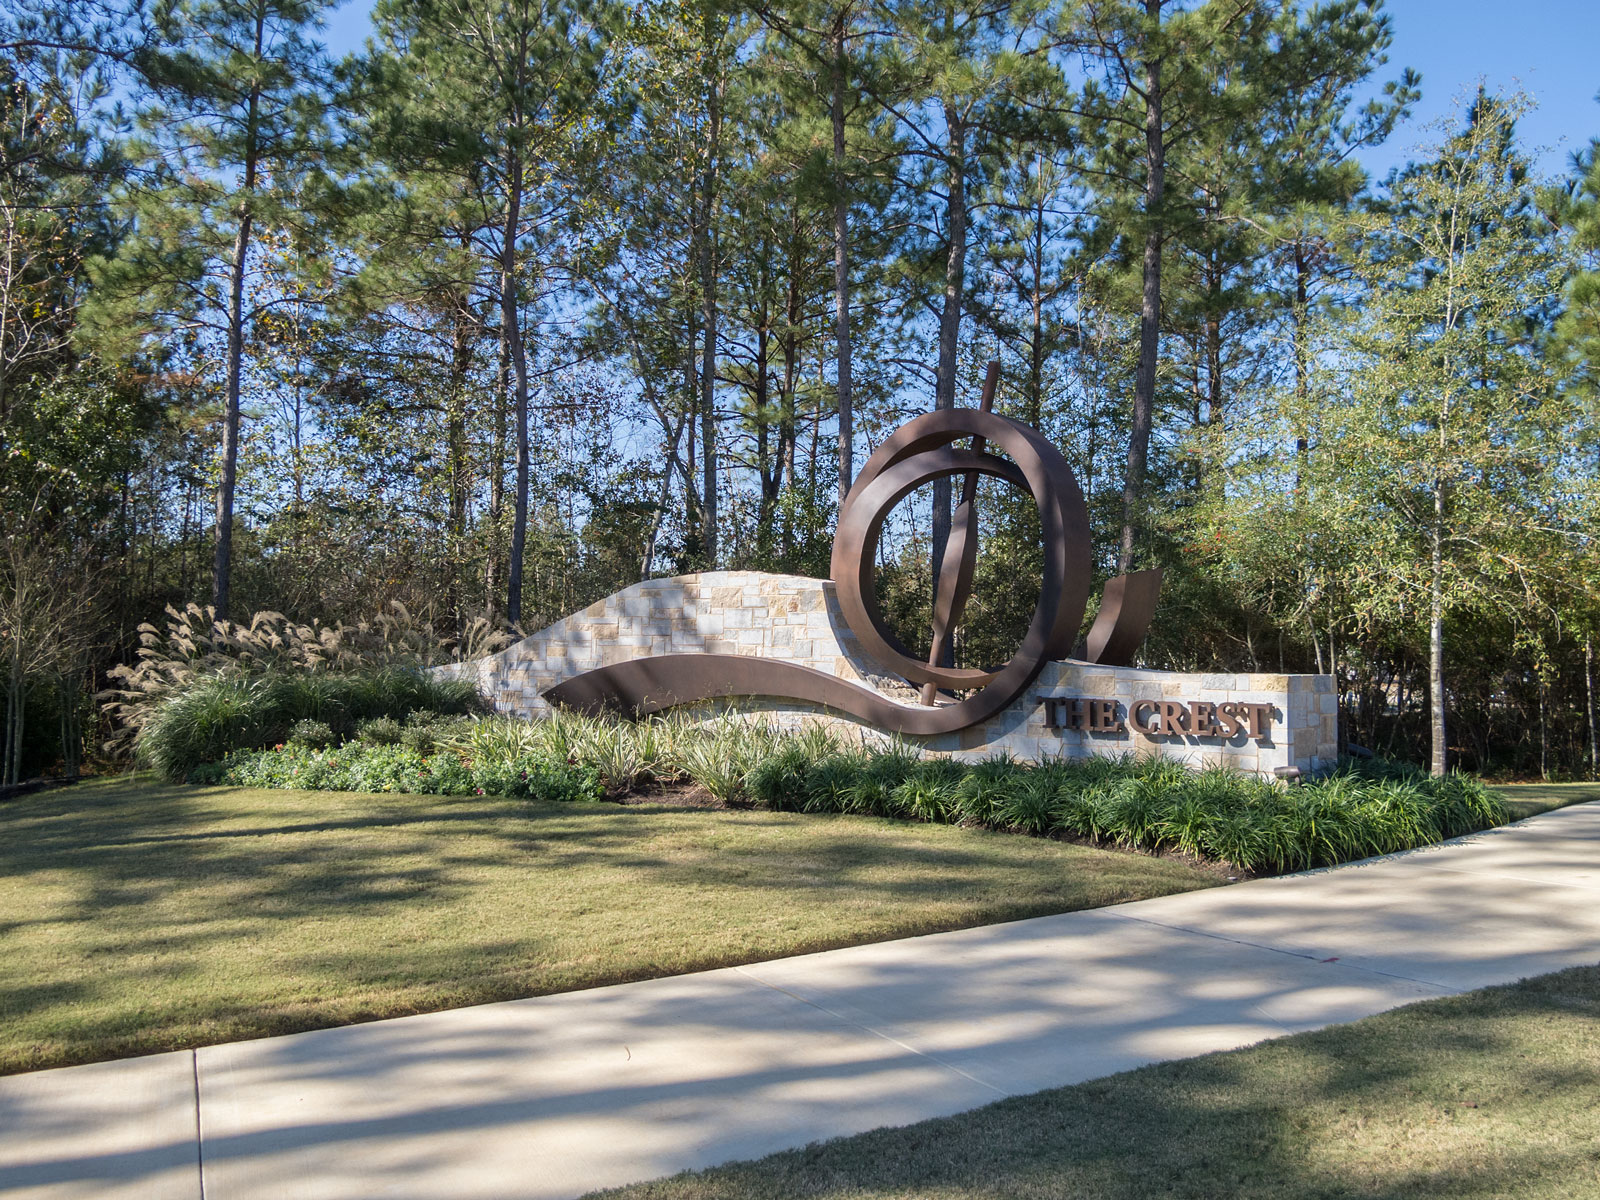 Corner view of entry monument with internally illuminated, custom fabricated aluminum sculptural element and halo-lit channel letters.